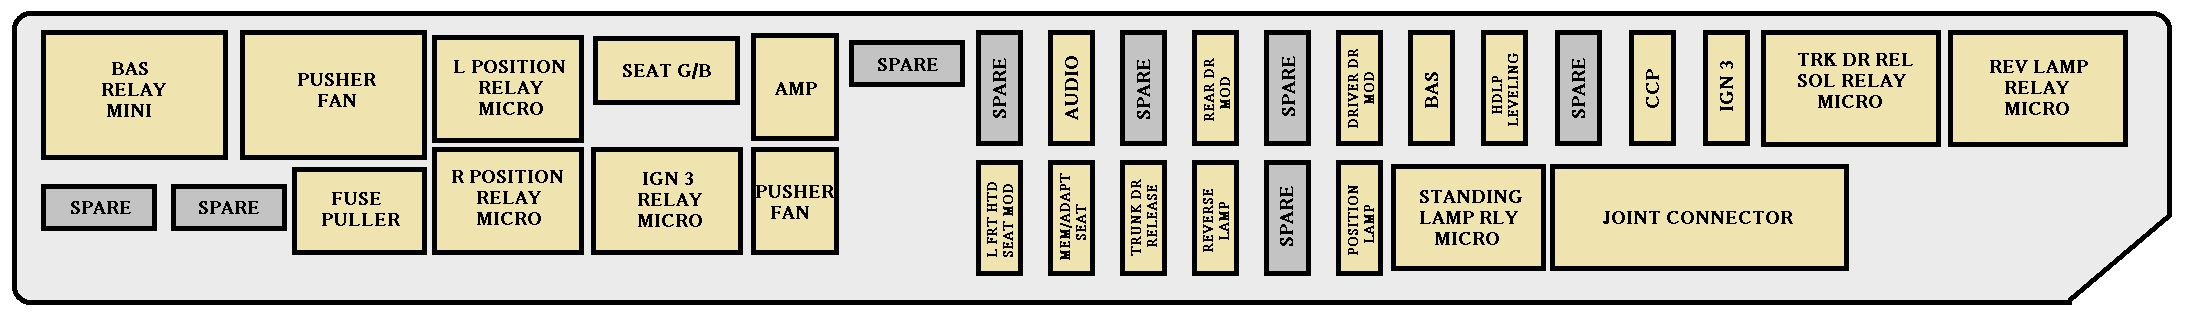 Cadillac CTS mk1 fuse box rear udnerseat drivers side 2004 cadillac cts mk1 (first generation; 2004) fuse box diagram 2003 cadillac deville fuse box diagram at bayanpartner.co